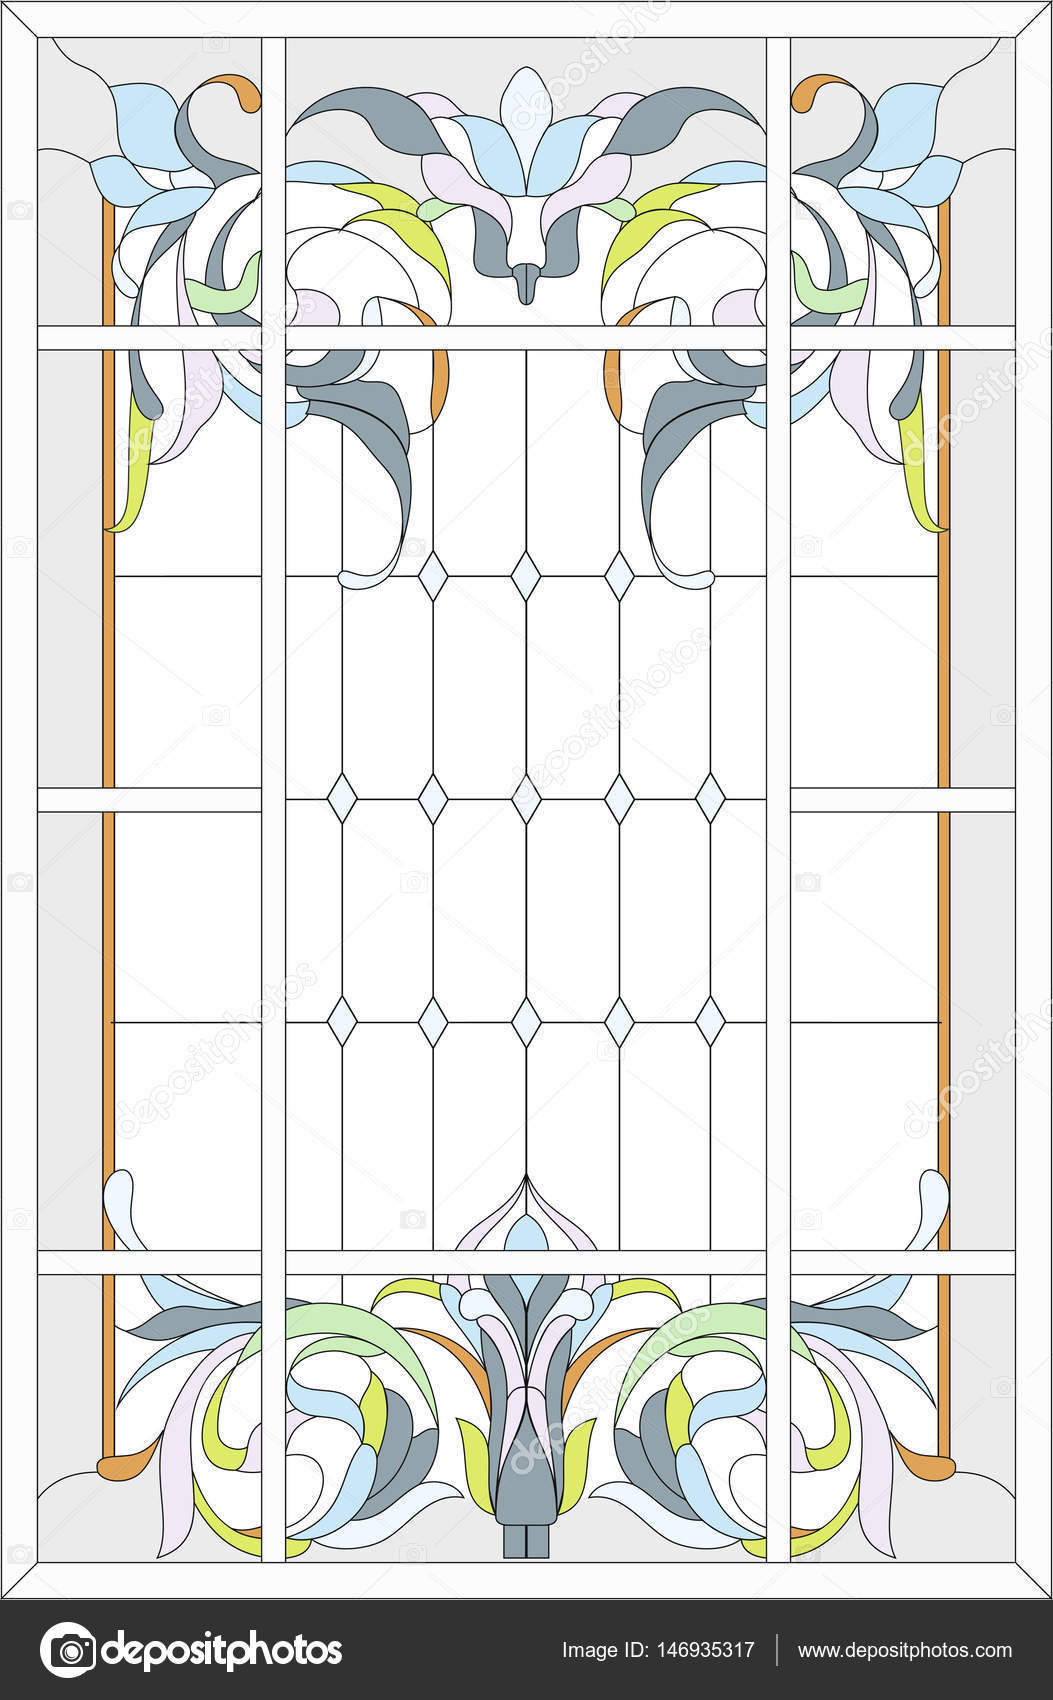 Stained Gl Panel In A Rectangular Frame Abstract Fl Arrangement Of Buds And Leaves